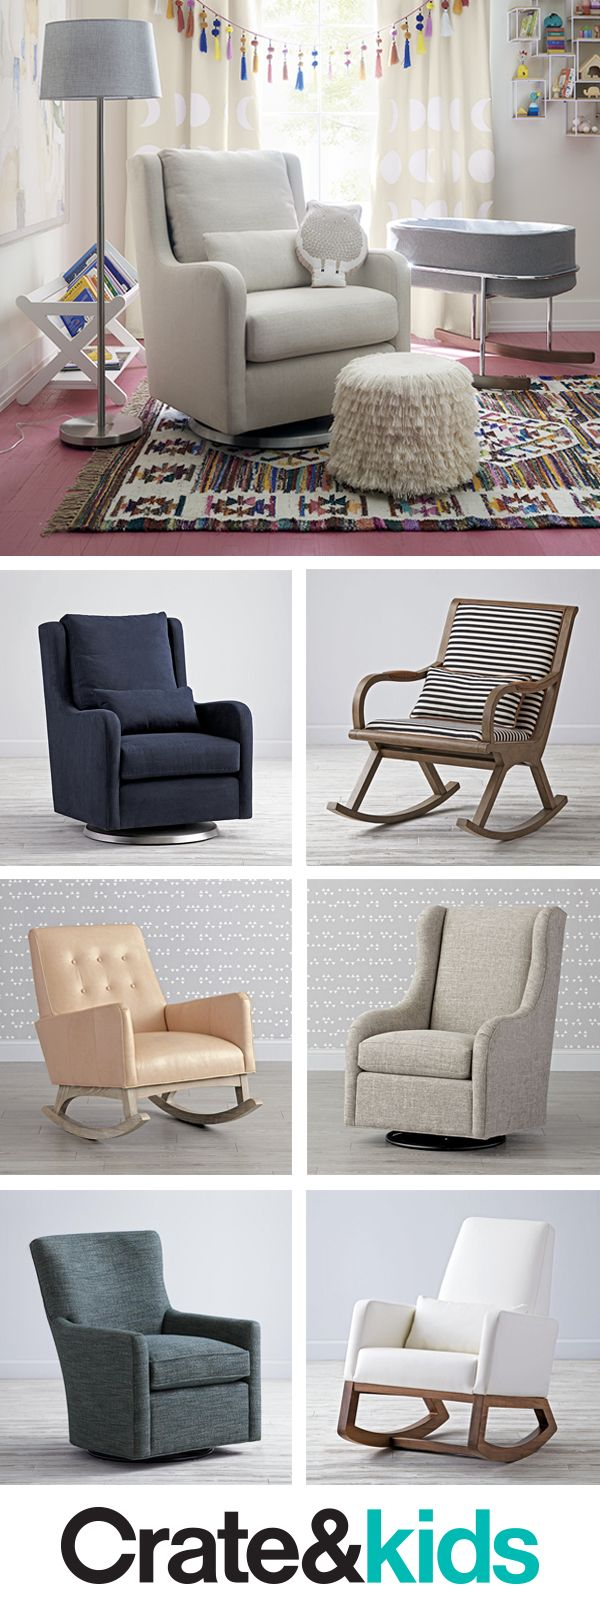 Rocking Chairs and Gliders   Crate and Barrel is part of Baby furniture - Add comfy, stylish rocking chairs and gliders to your nursery to make bedtime and feeding time a fun bonding experience